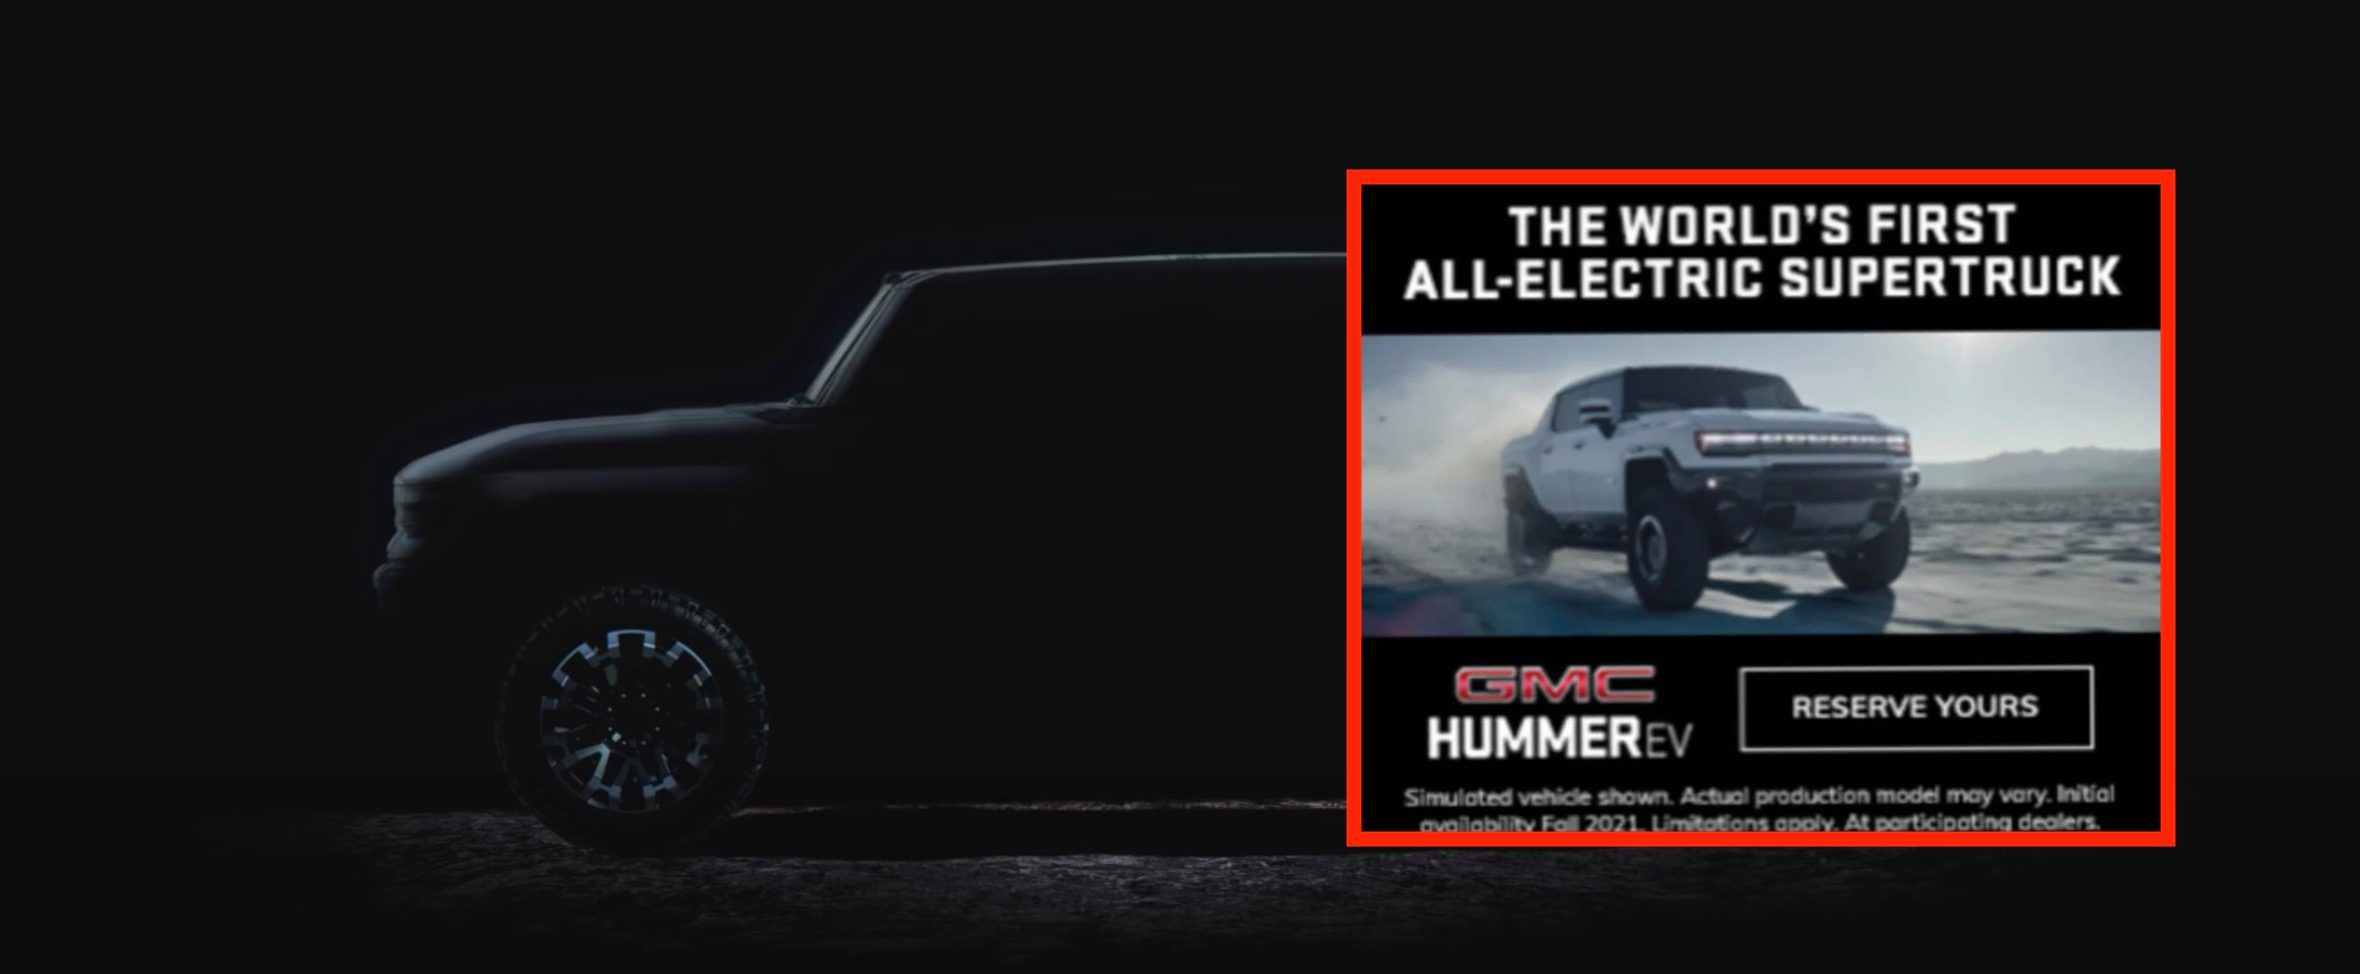 GMC Hummer EV  Electric pickup design leaks in advertising prior to introduction